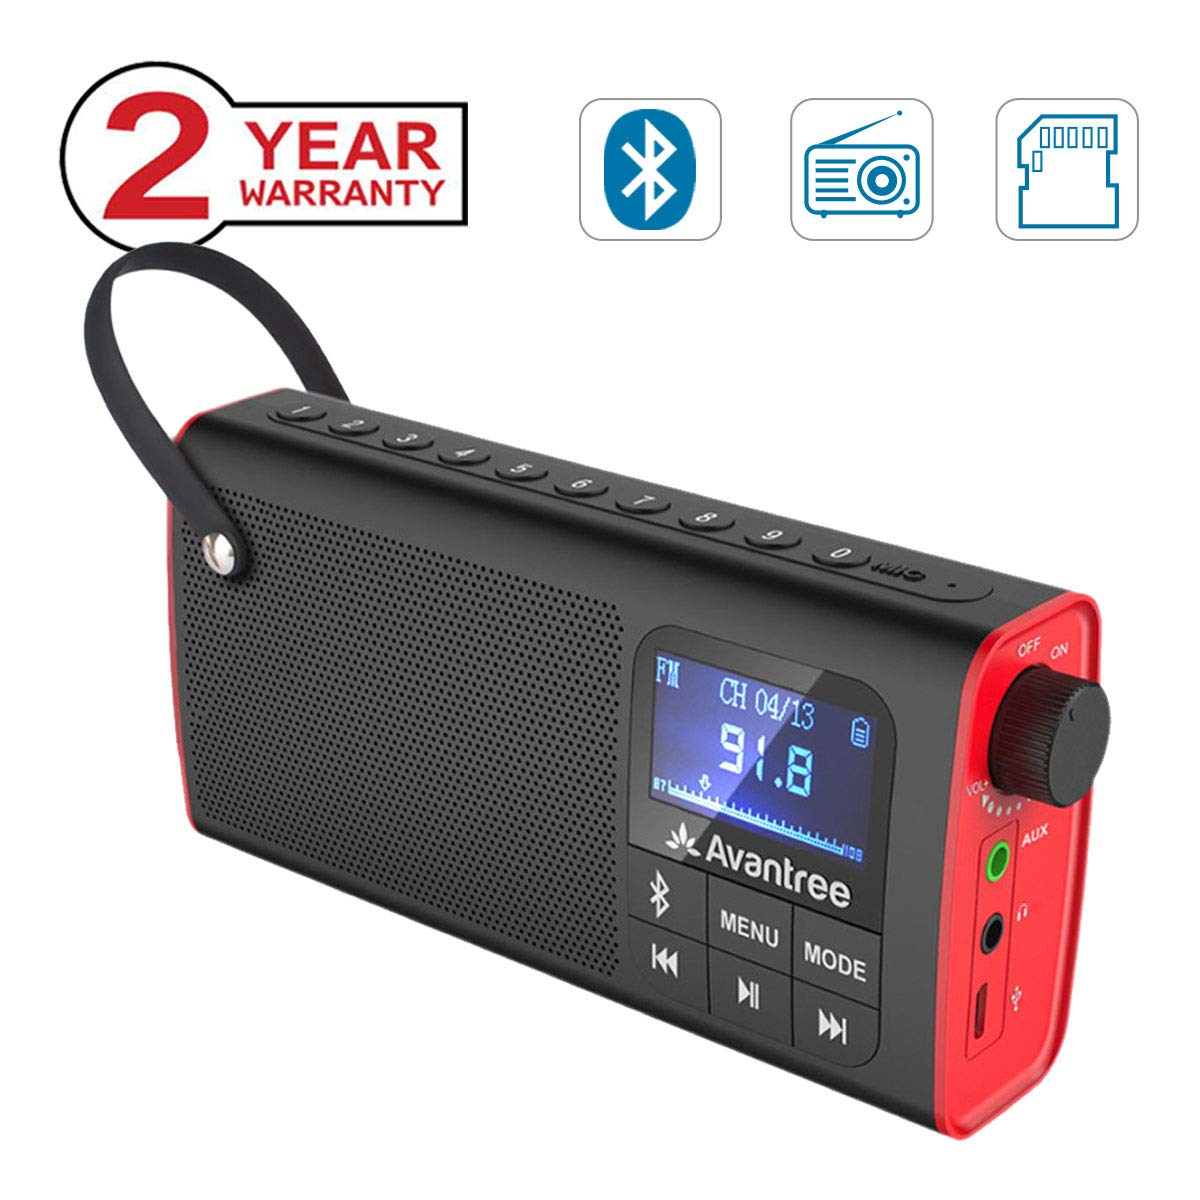 Avantree 3-in-1 Portable FM Radio with Bluetooth Speaker and